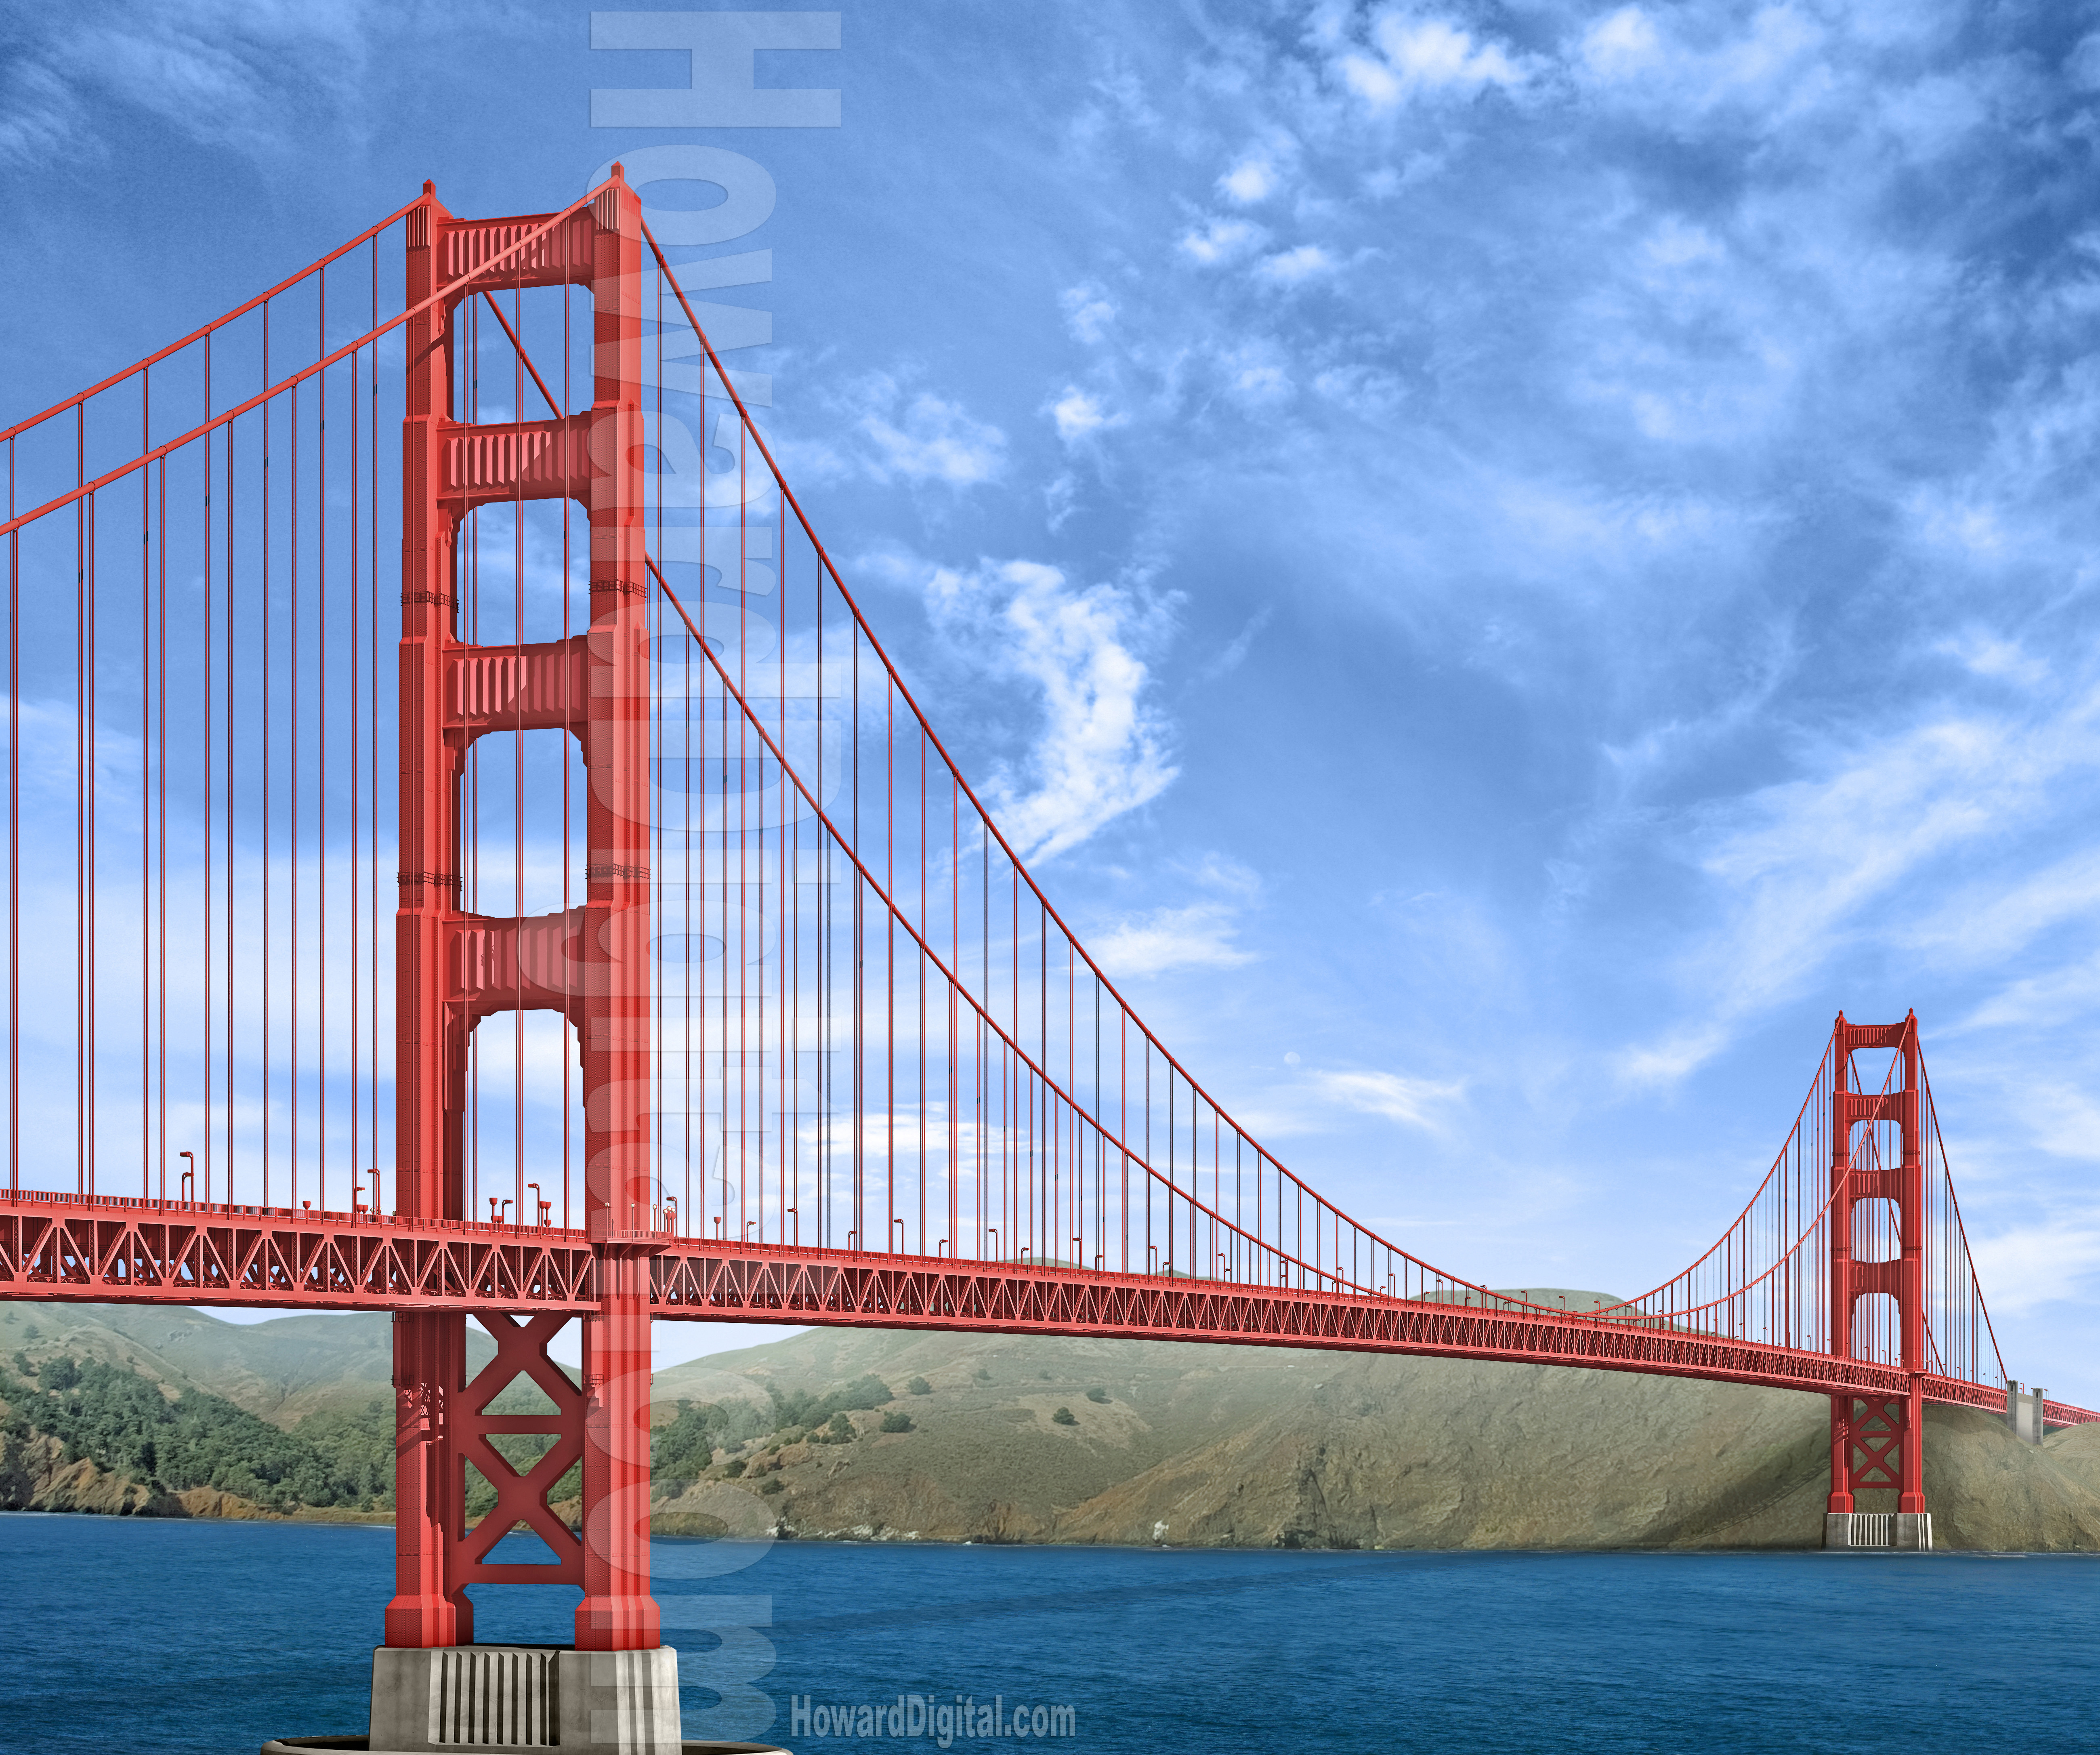 Build your own famous structures like the brooklyn bridge tower